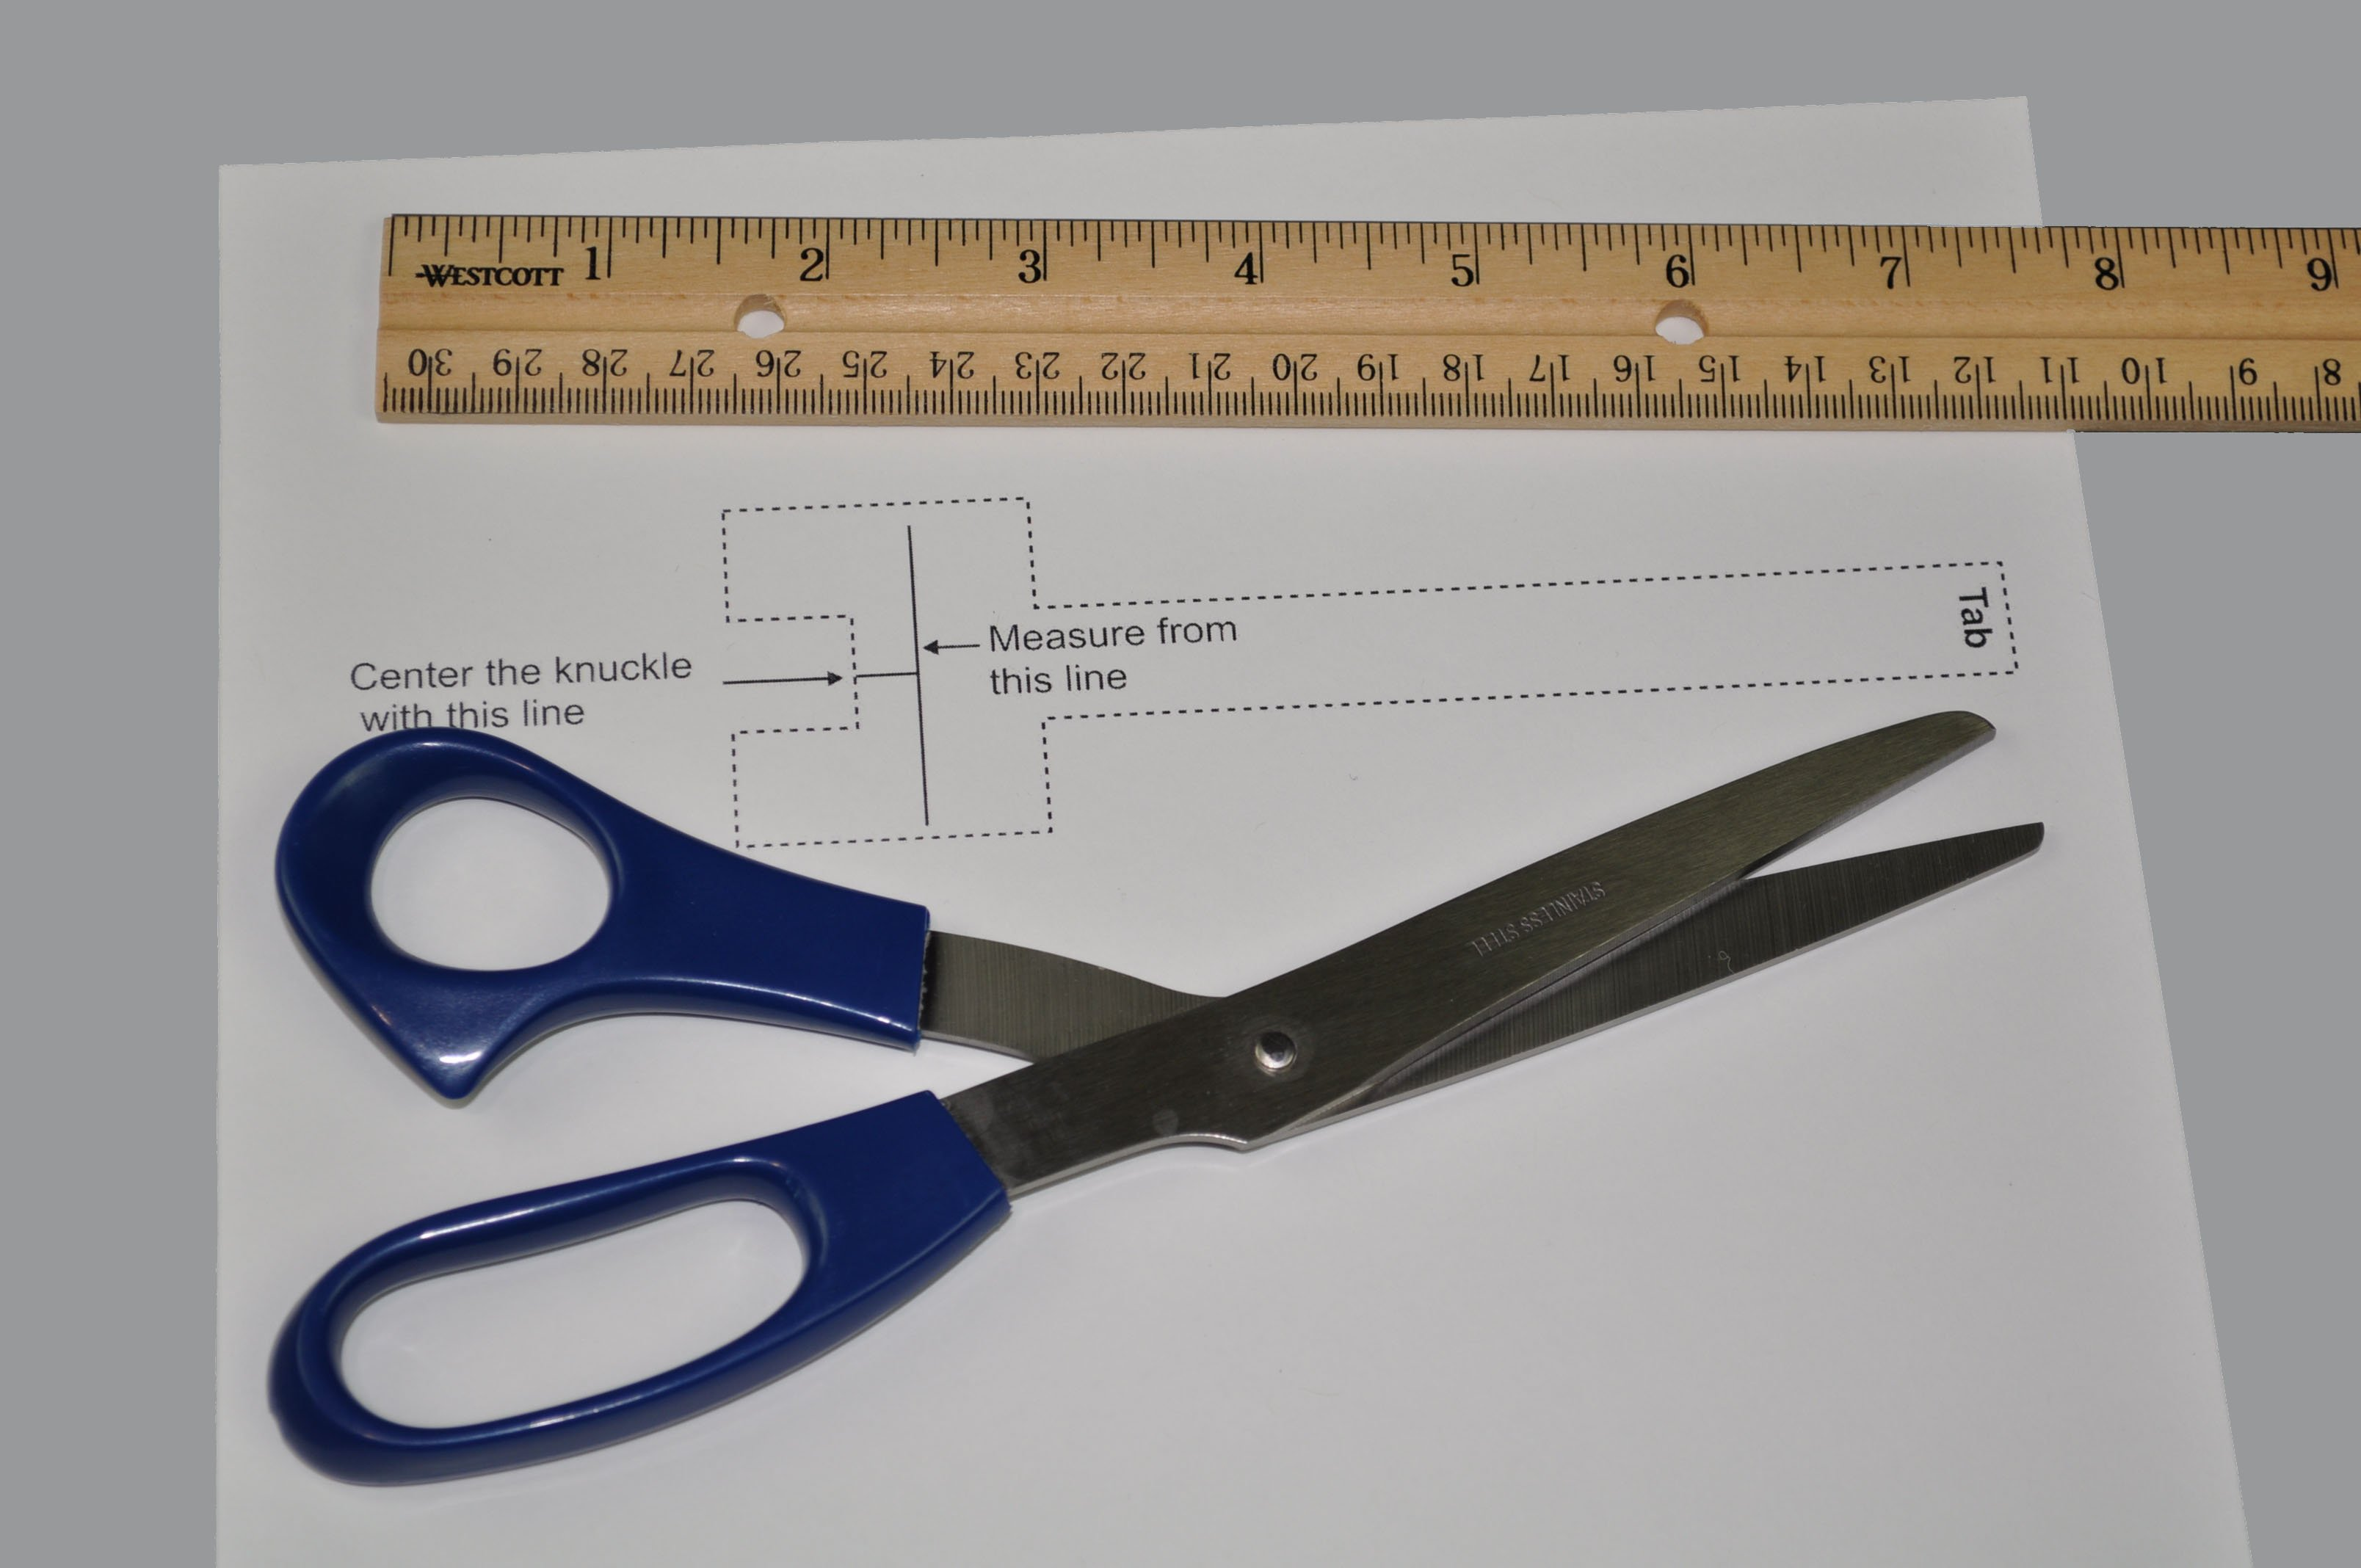 For the Oval-8 sizing guide you will need the guide, scissors and a ruler with both inches and metric measurements.